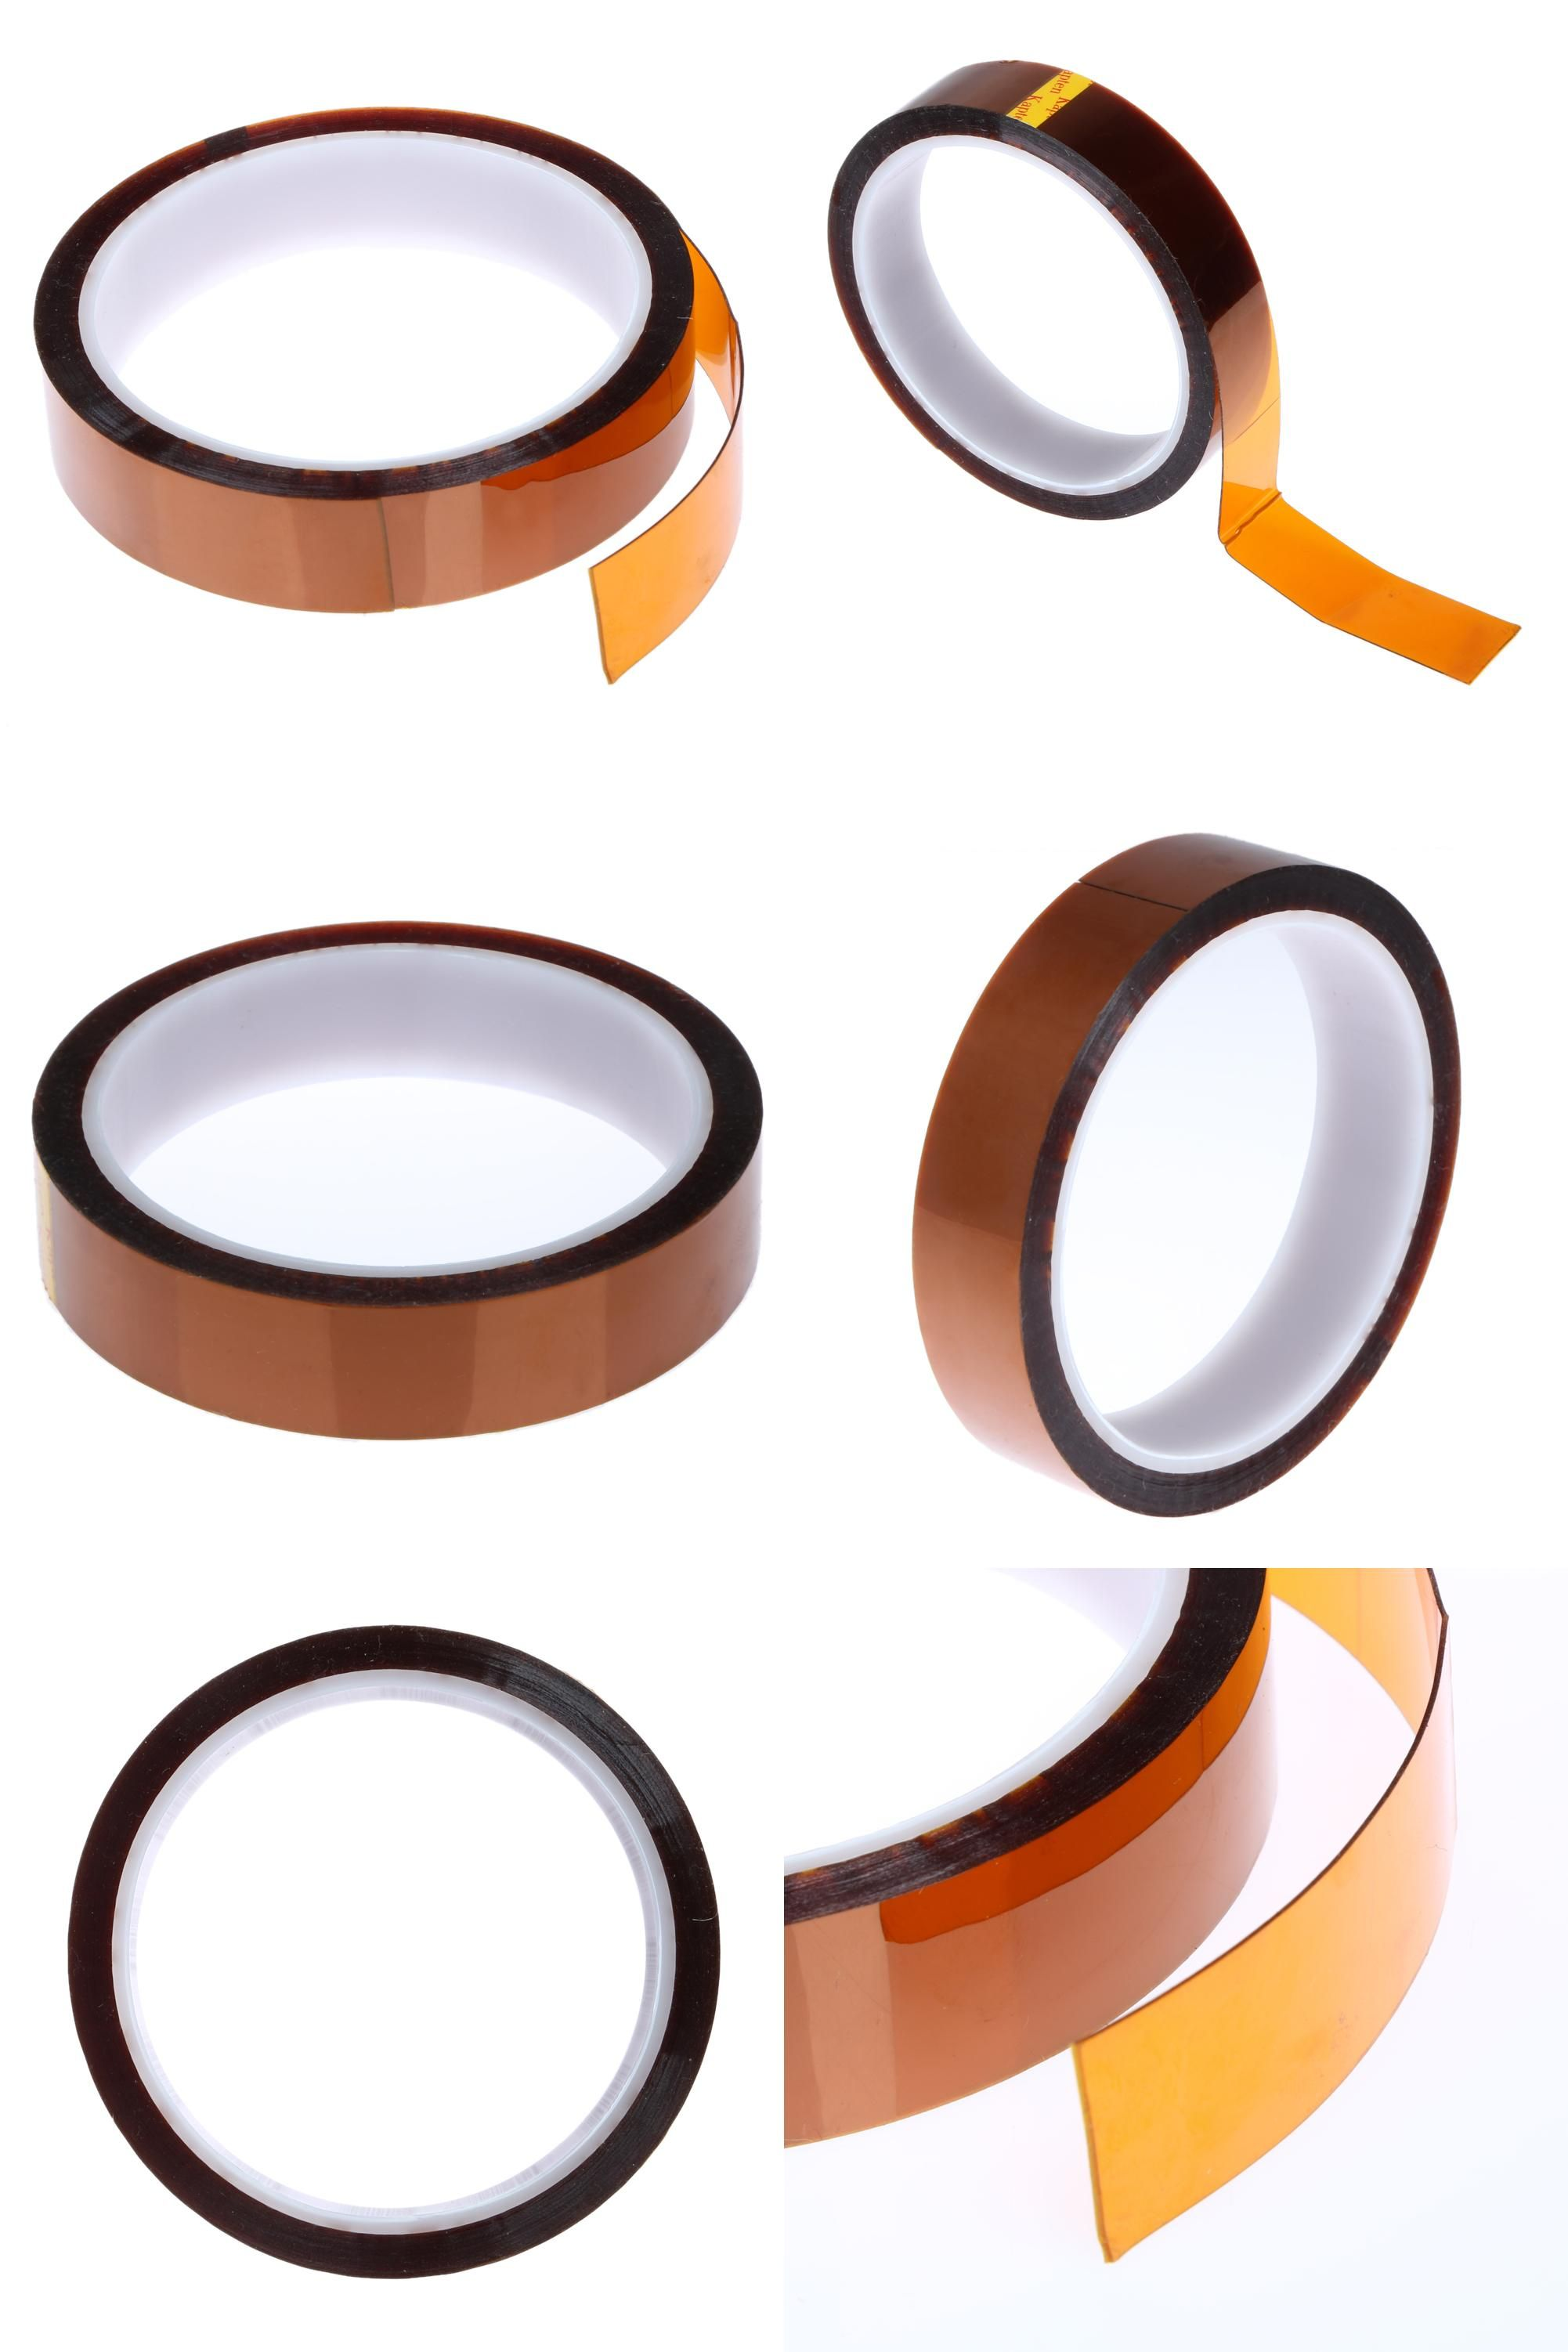 0.62US $ 30% OFF|High Temperature Heat BGA Tape Thermal Insulation Tape Polyimide Adhesive Insulating adhesive Tape 3D printing Board protection|heat resistant tape 20mm|tape tapetape temperature resistant - AliExpress